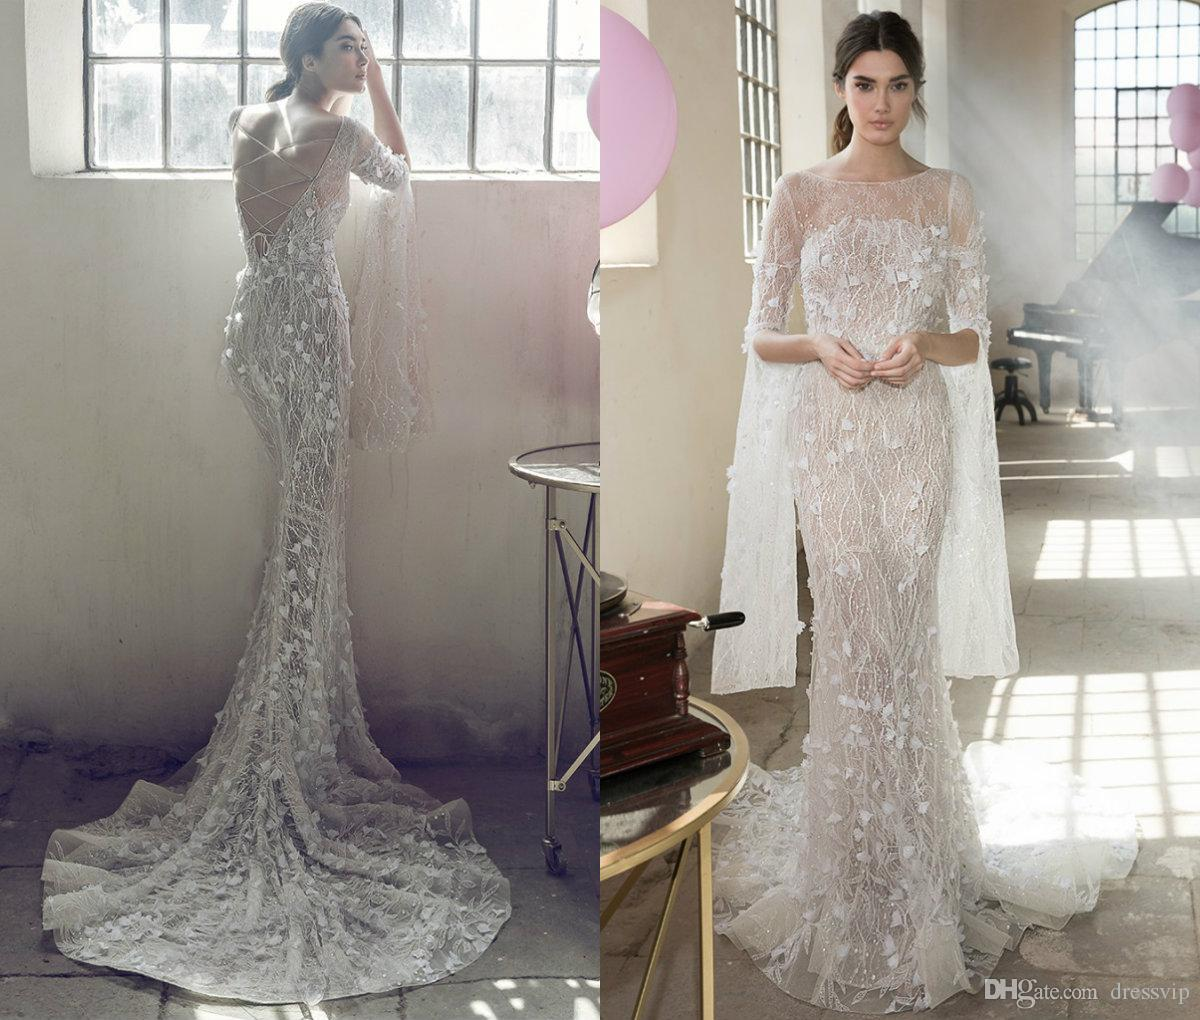 3D Floral Lace Wedding Dress With Sleeves | Kleinfeld Bridal